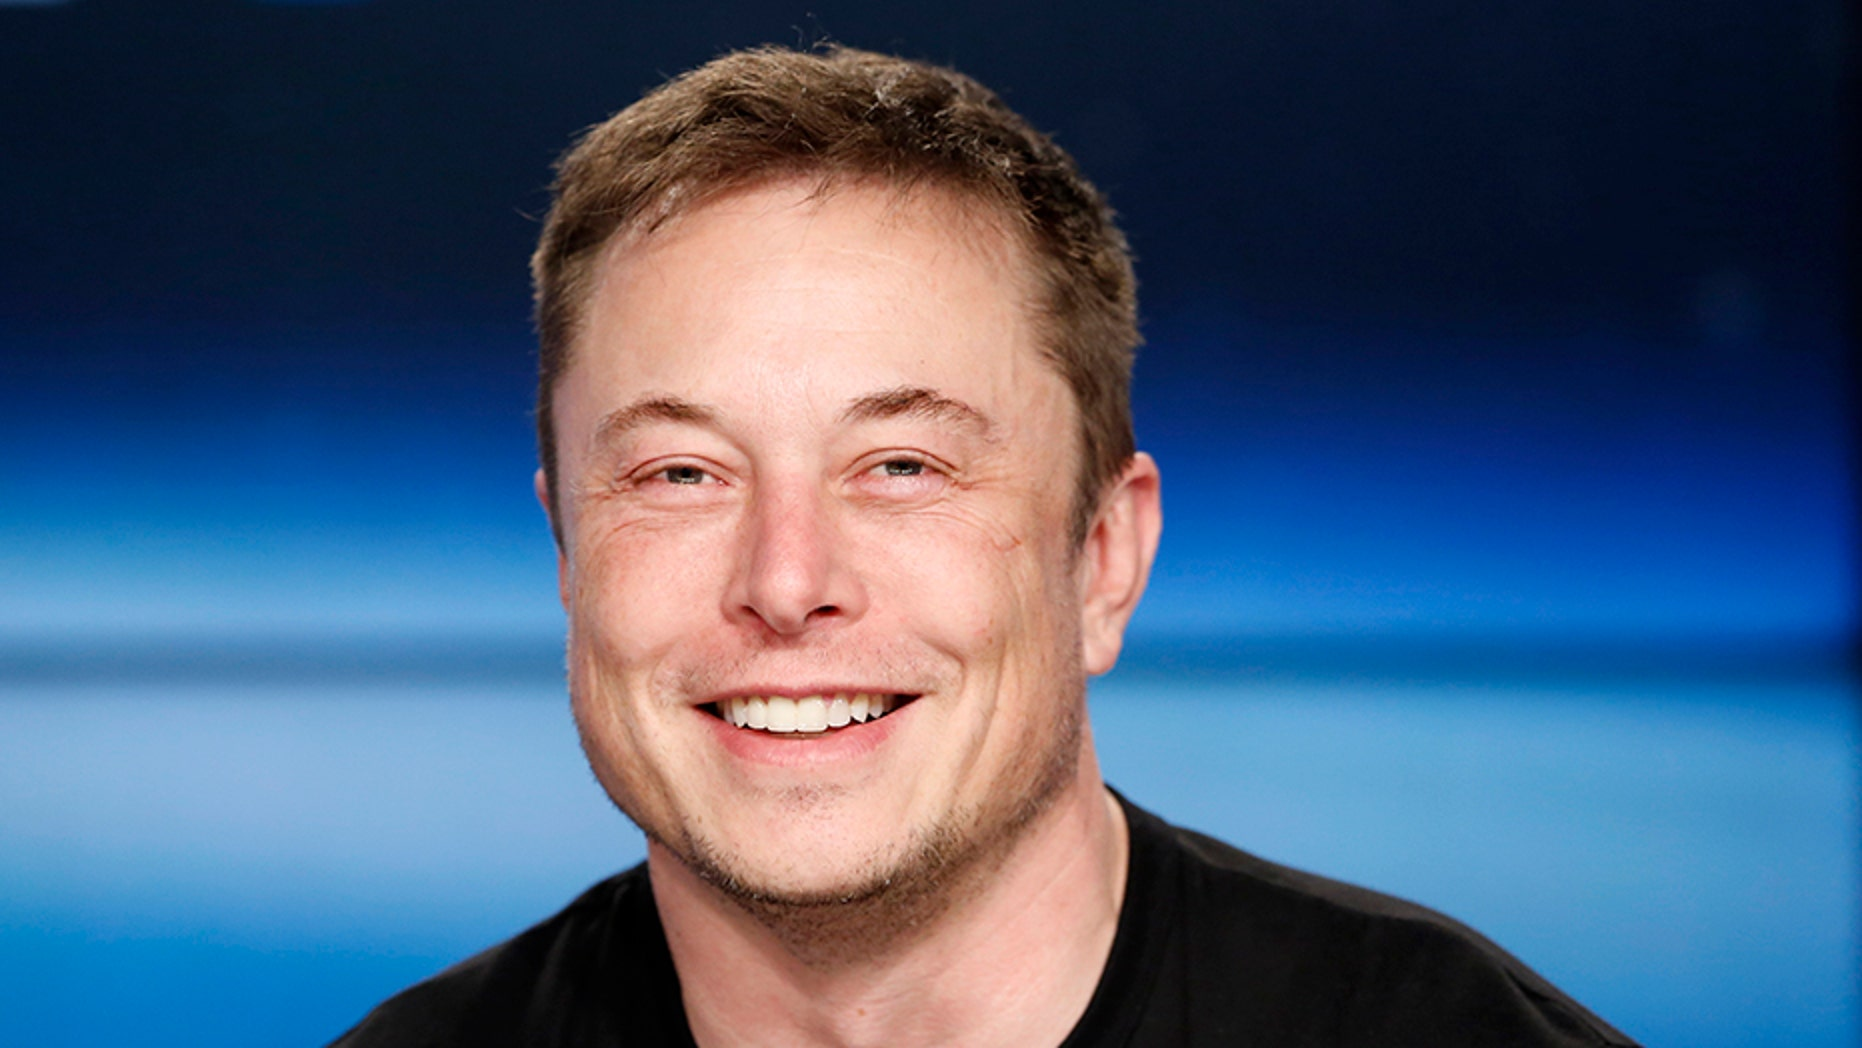 Tesla CEO Elon Musk took to Twitter Wednesday to vent about the media.